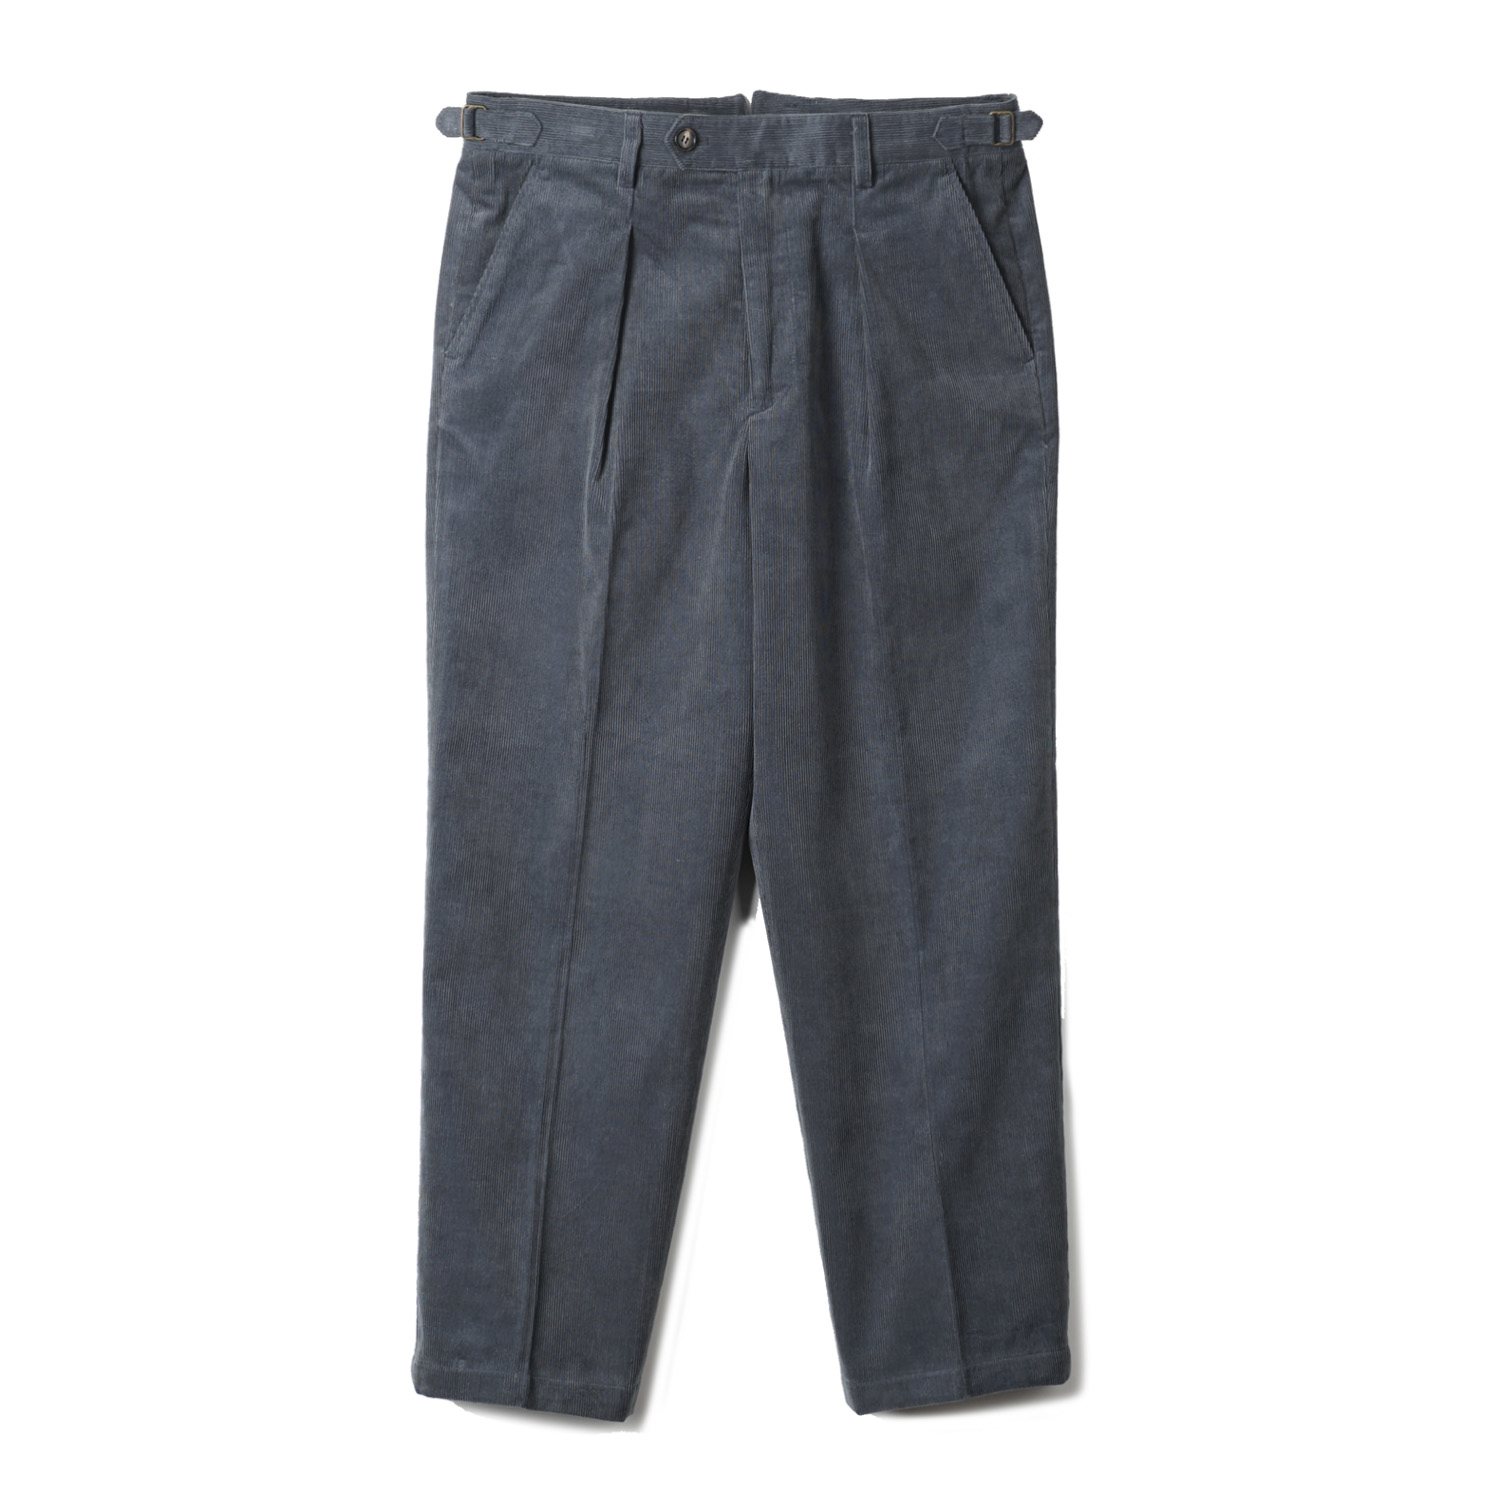 TJA Corduroy One-tuck Pants - Bluegrey